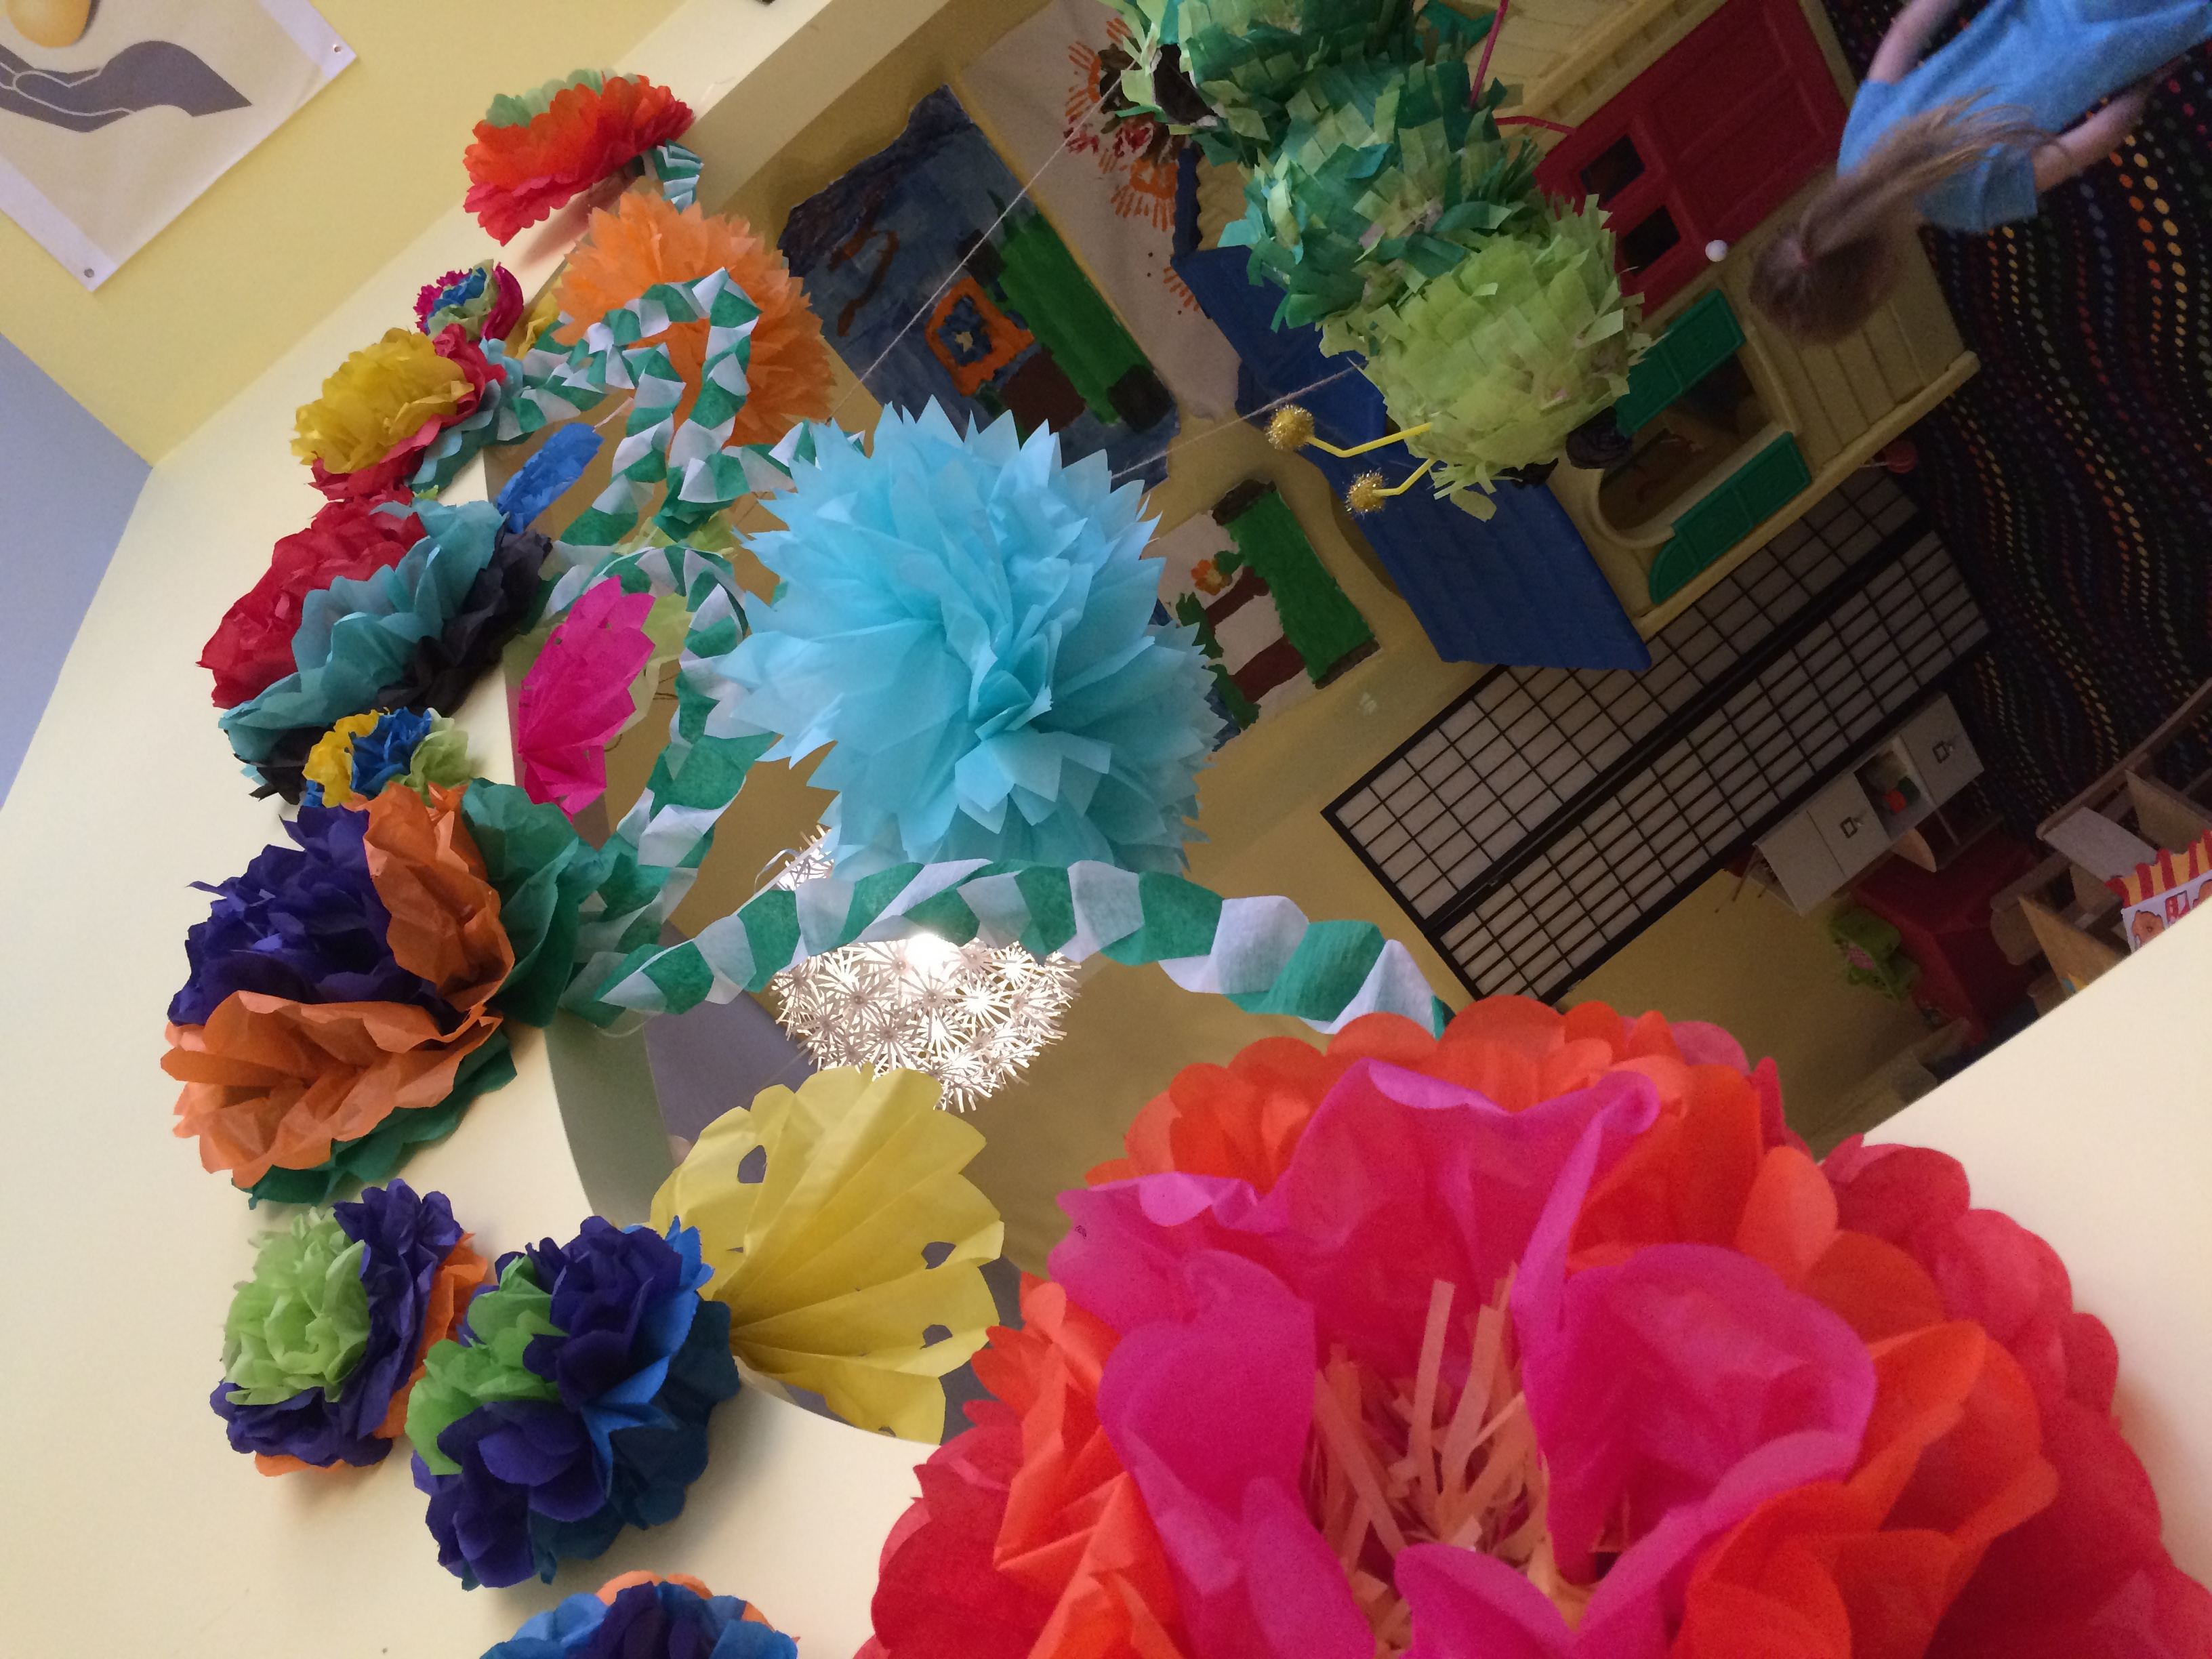 1 CHICKPEA Cinco de Mayo tissue paper flowers